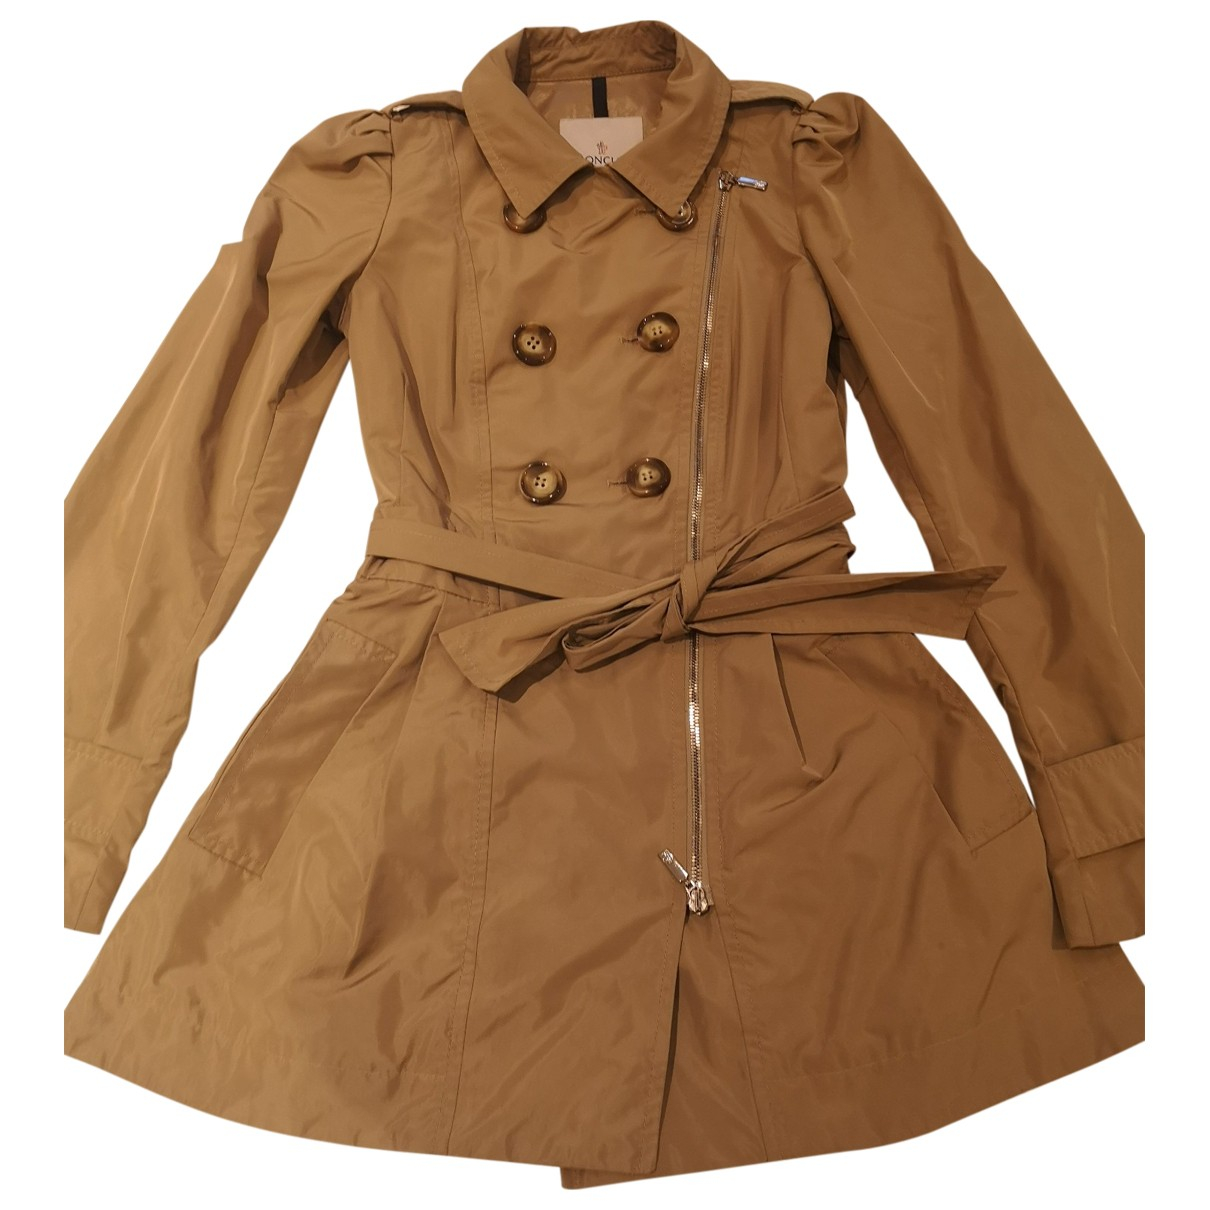 Moncler N Camel Trench coat for Women 1 0-5